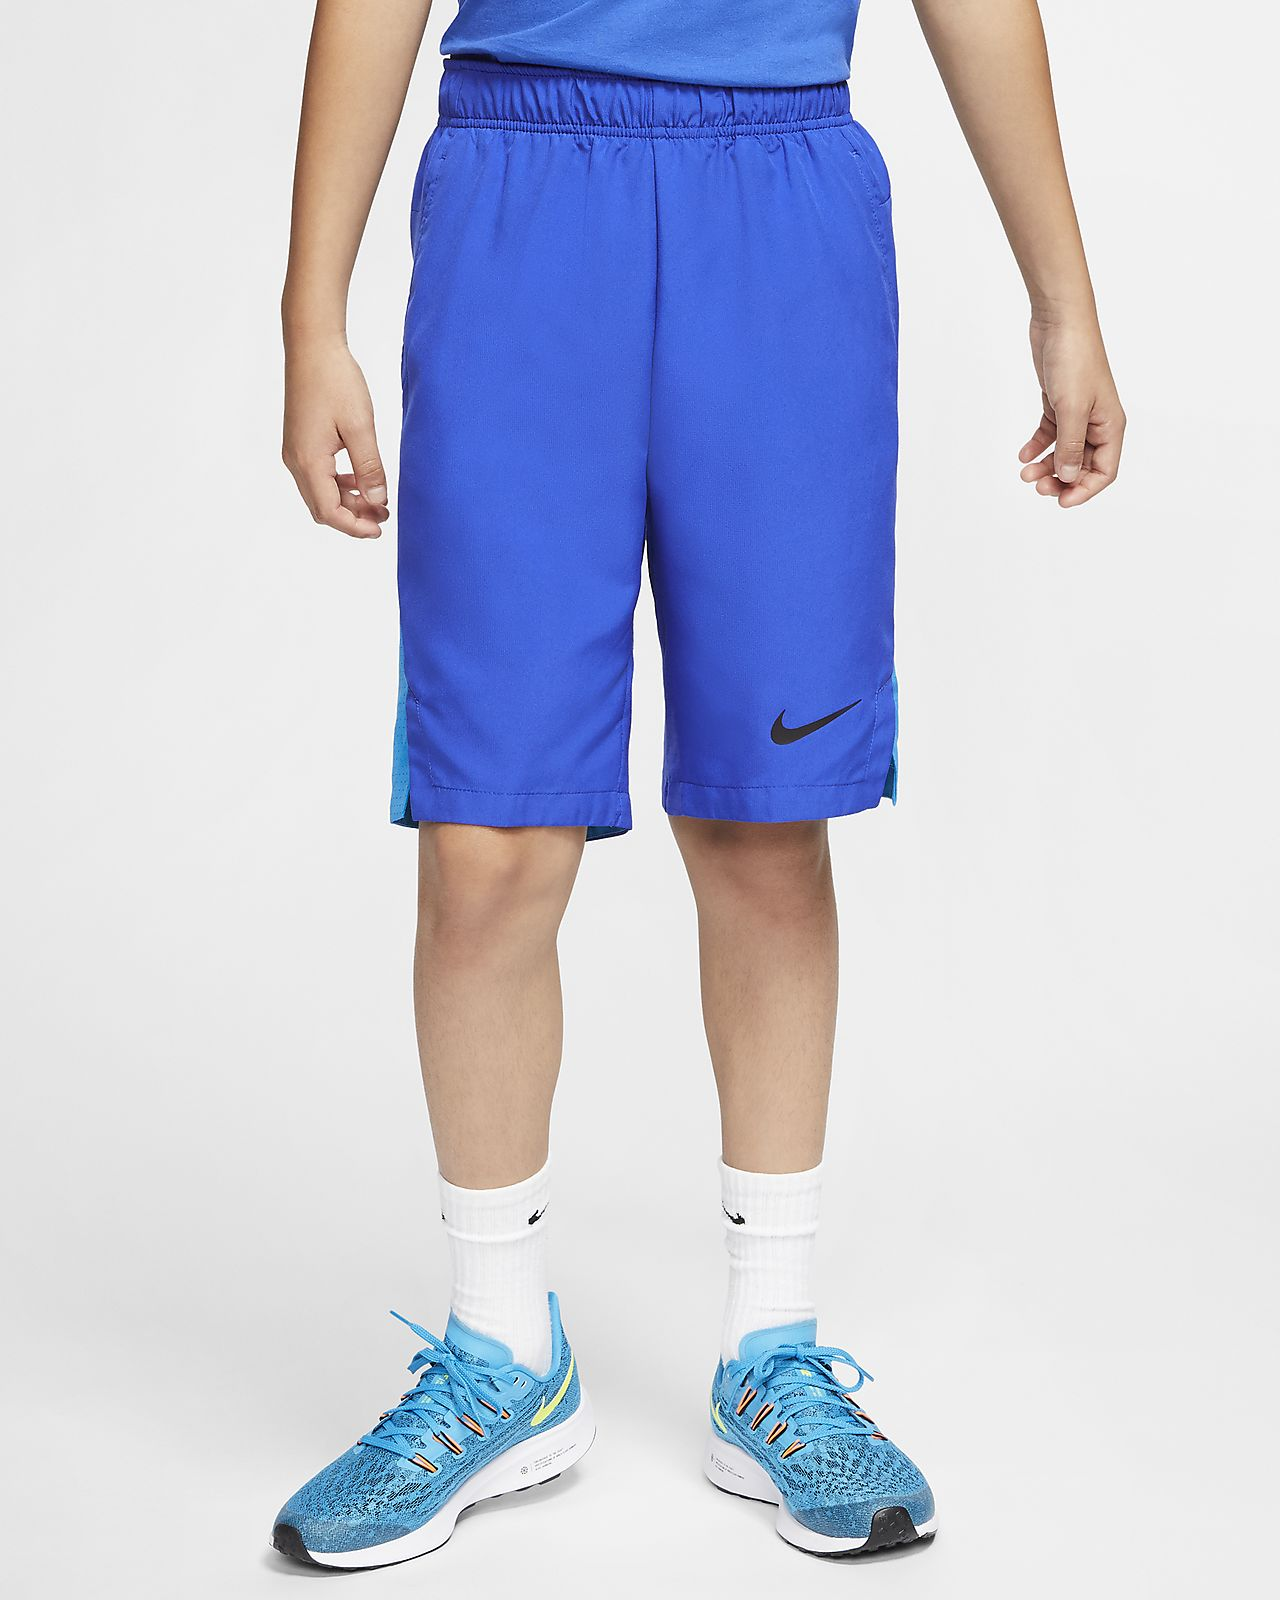 Nike Older Kids' (Boys') Woven Training Shorts